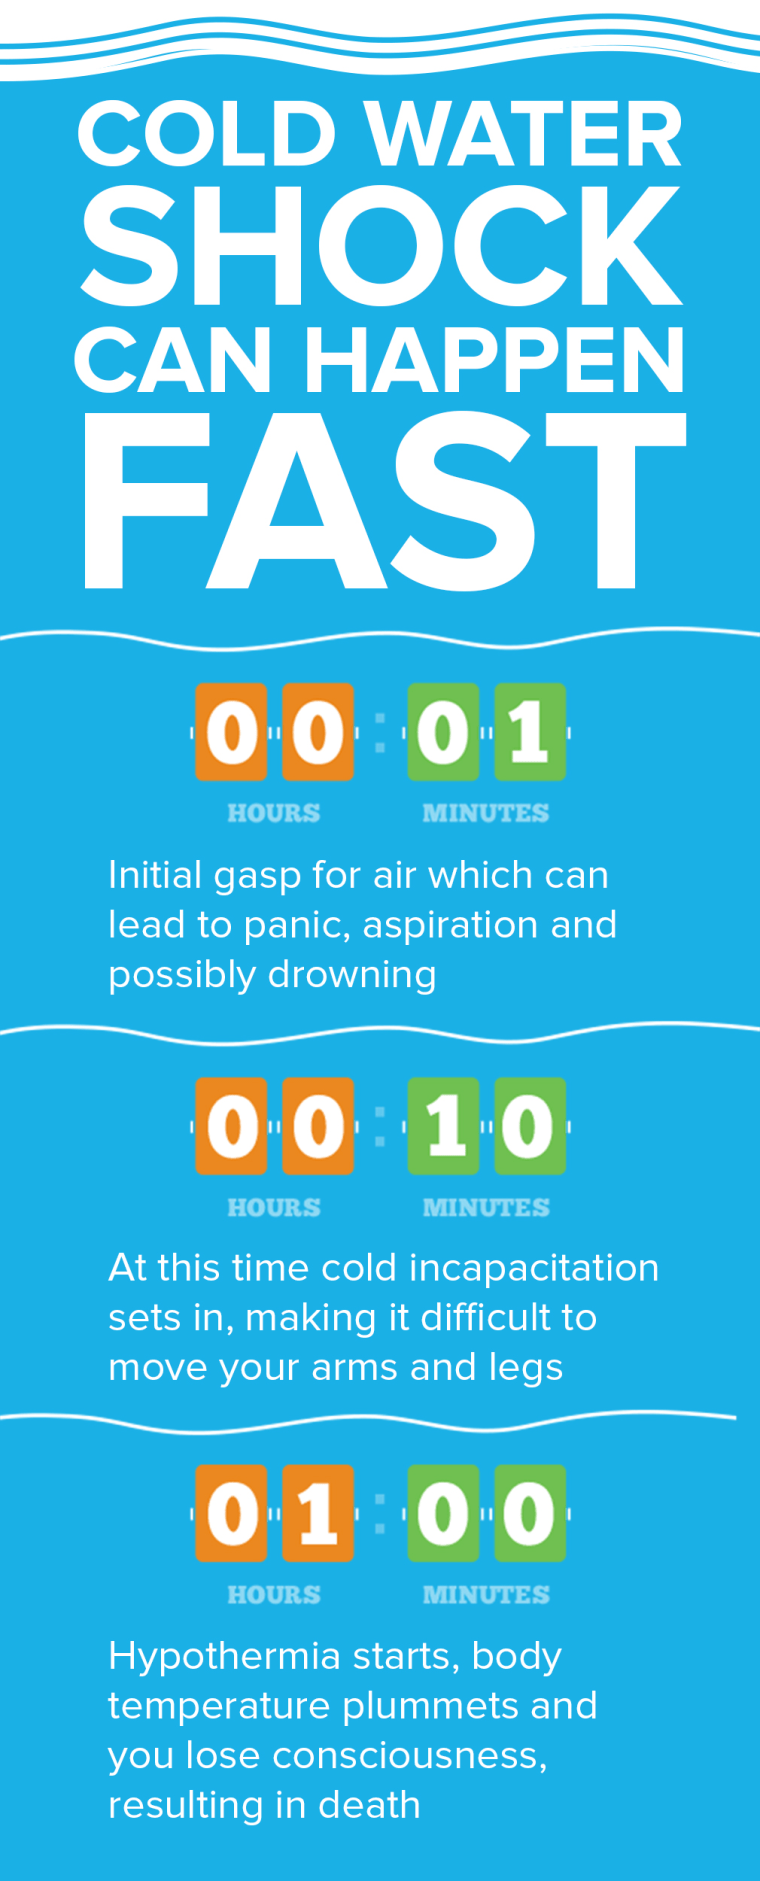 Cold Water Shock infographic